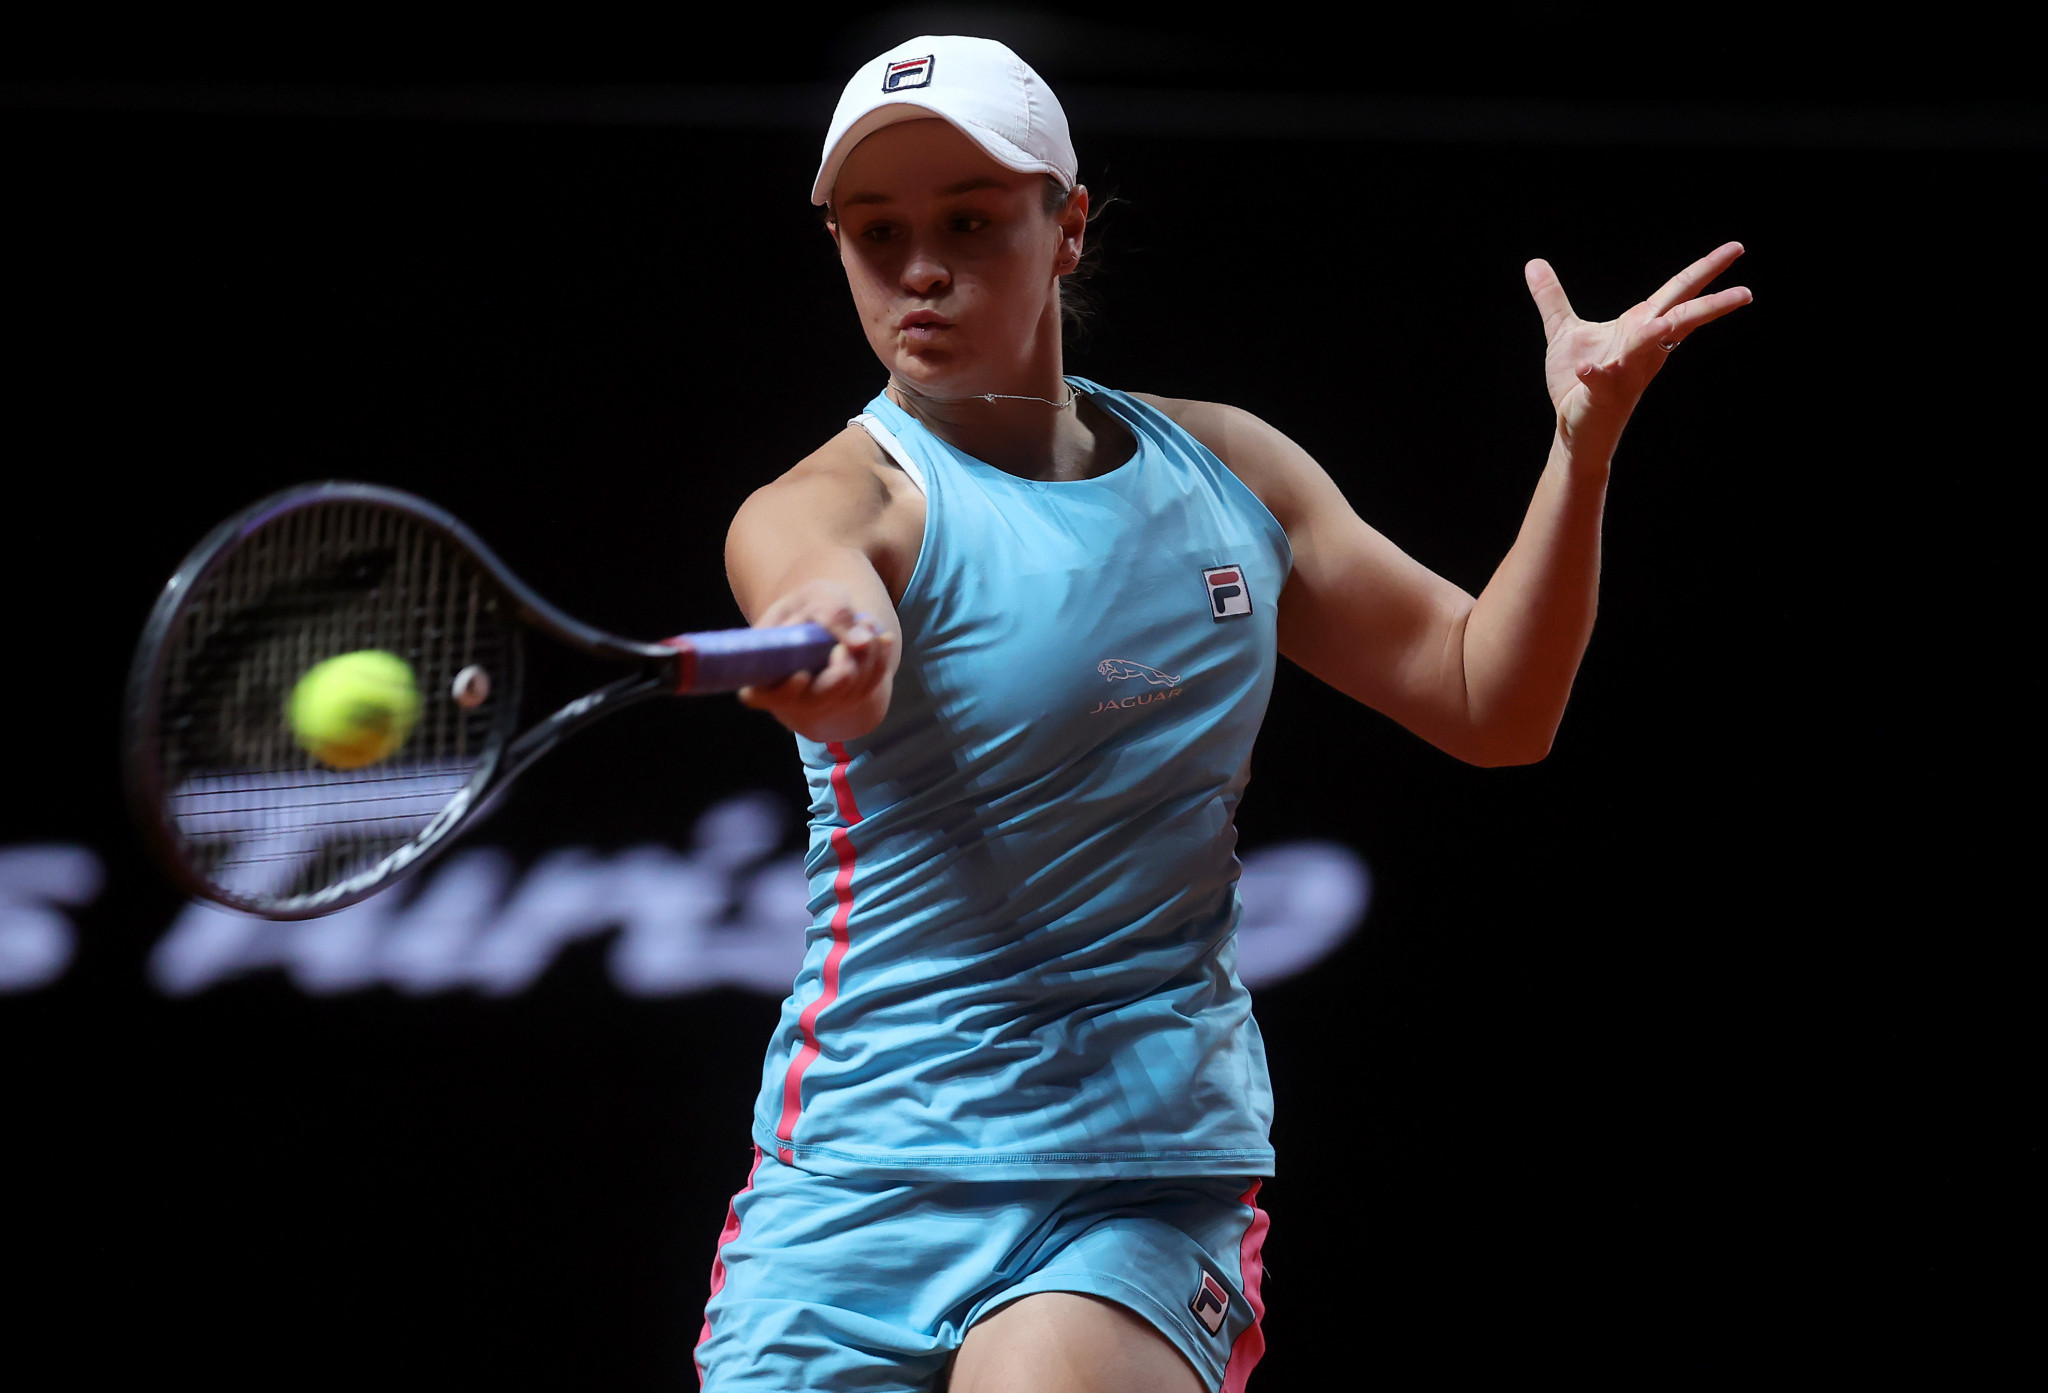 Ashleigh Barty won her second round match in three sets ©Getty Images